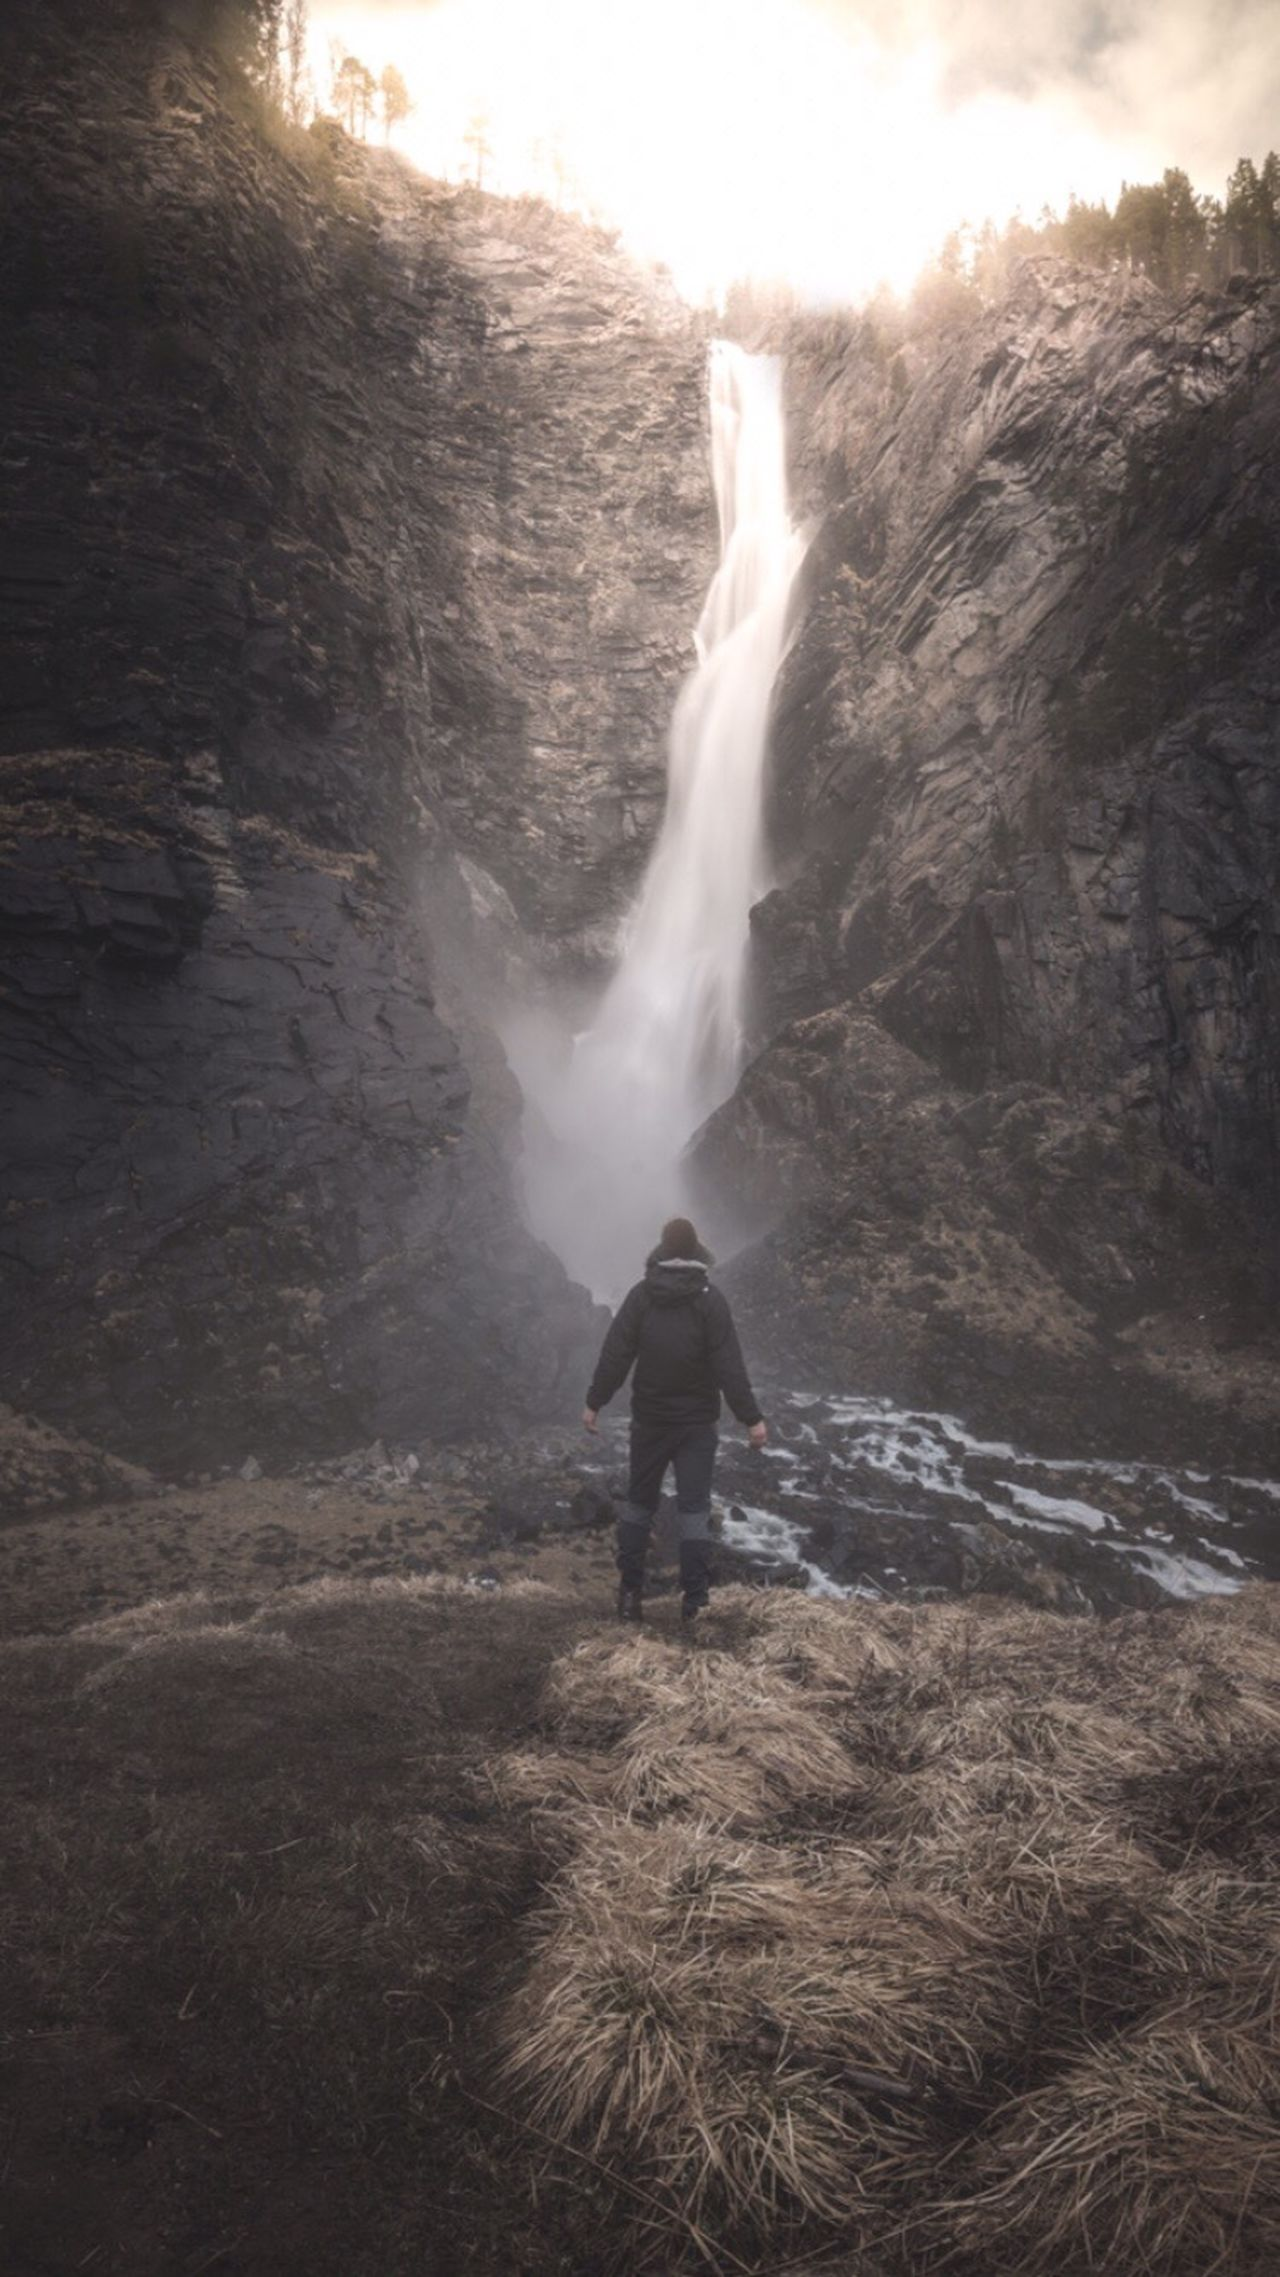 🇳🇴 Dream Chasing 🇳🇴 Motion EyeEm Best Shots Norway EyeEmPaid Waterfall Nature Water Beauty In Nature Long Exposure One Person Outdoors EyeEmNewHere Adventure Power In Nature Leisure Activity Scenics Standing Full Length Sky People Amotan Landscape EyeEm Masterclass Landscape_Collection The Great Outdoors - 2017 EyeEm Awards